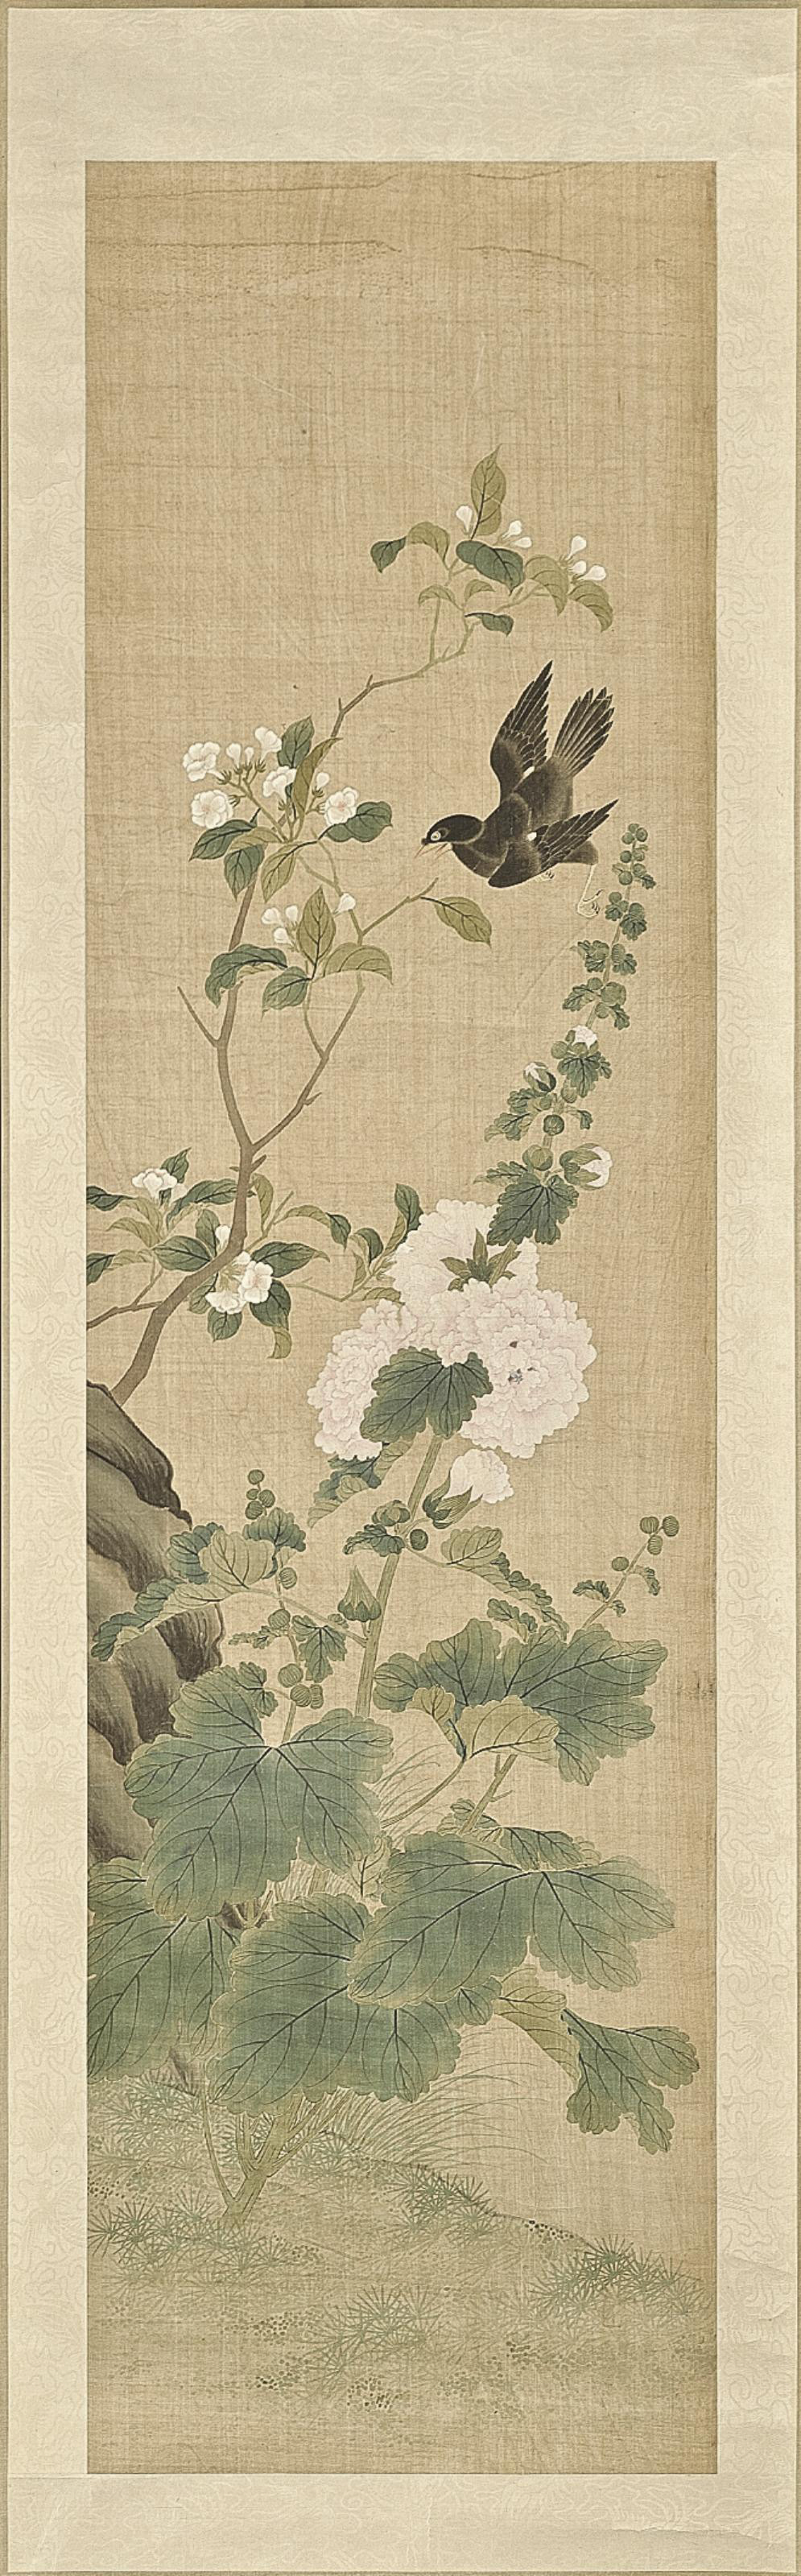 A CHINESE HANGING SCROLL